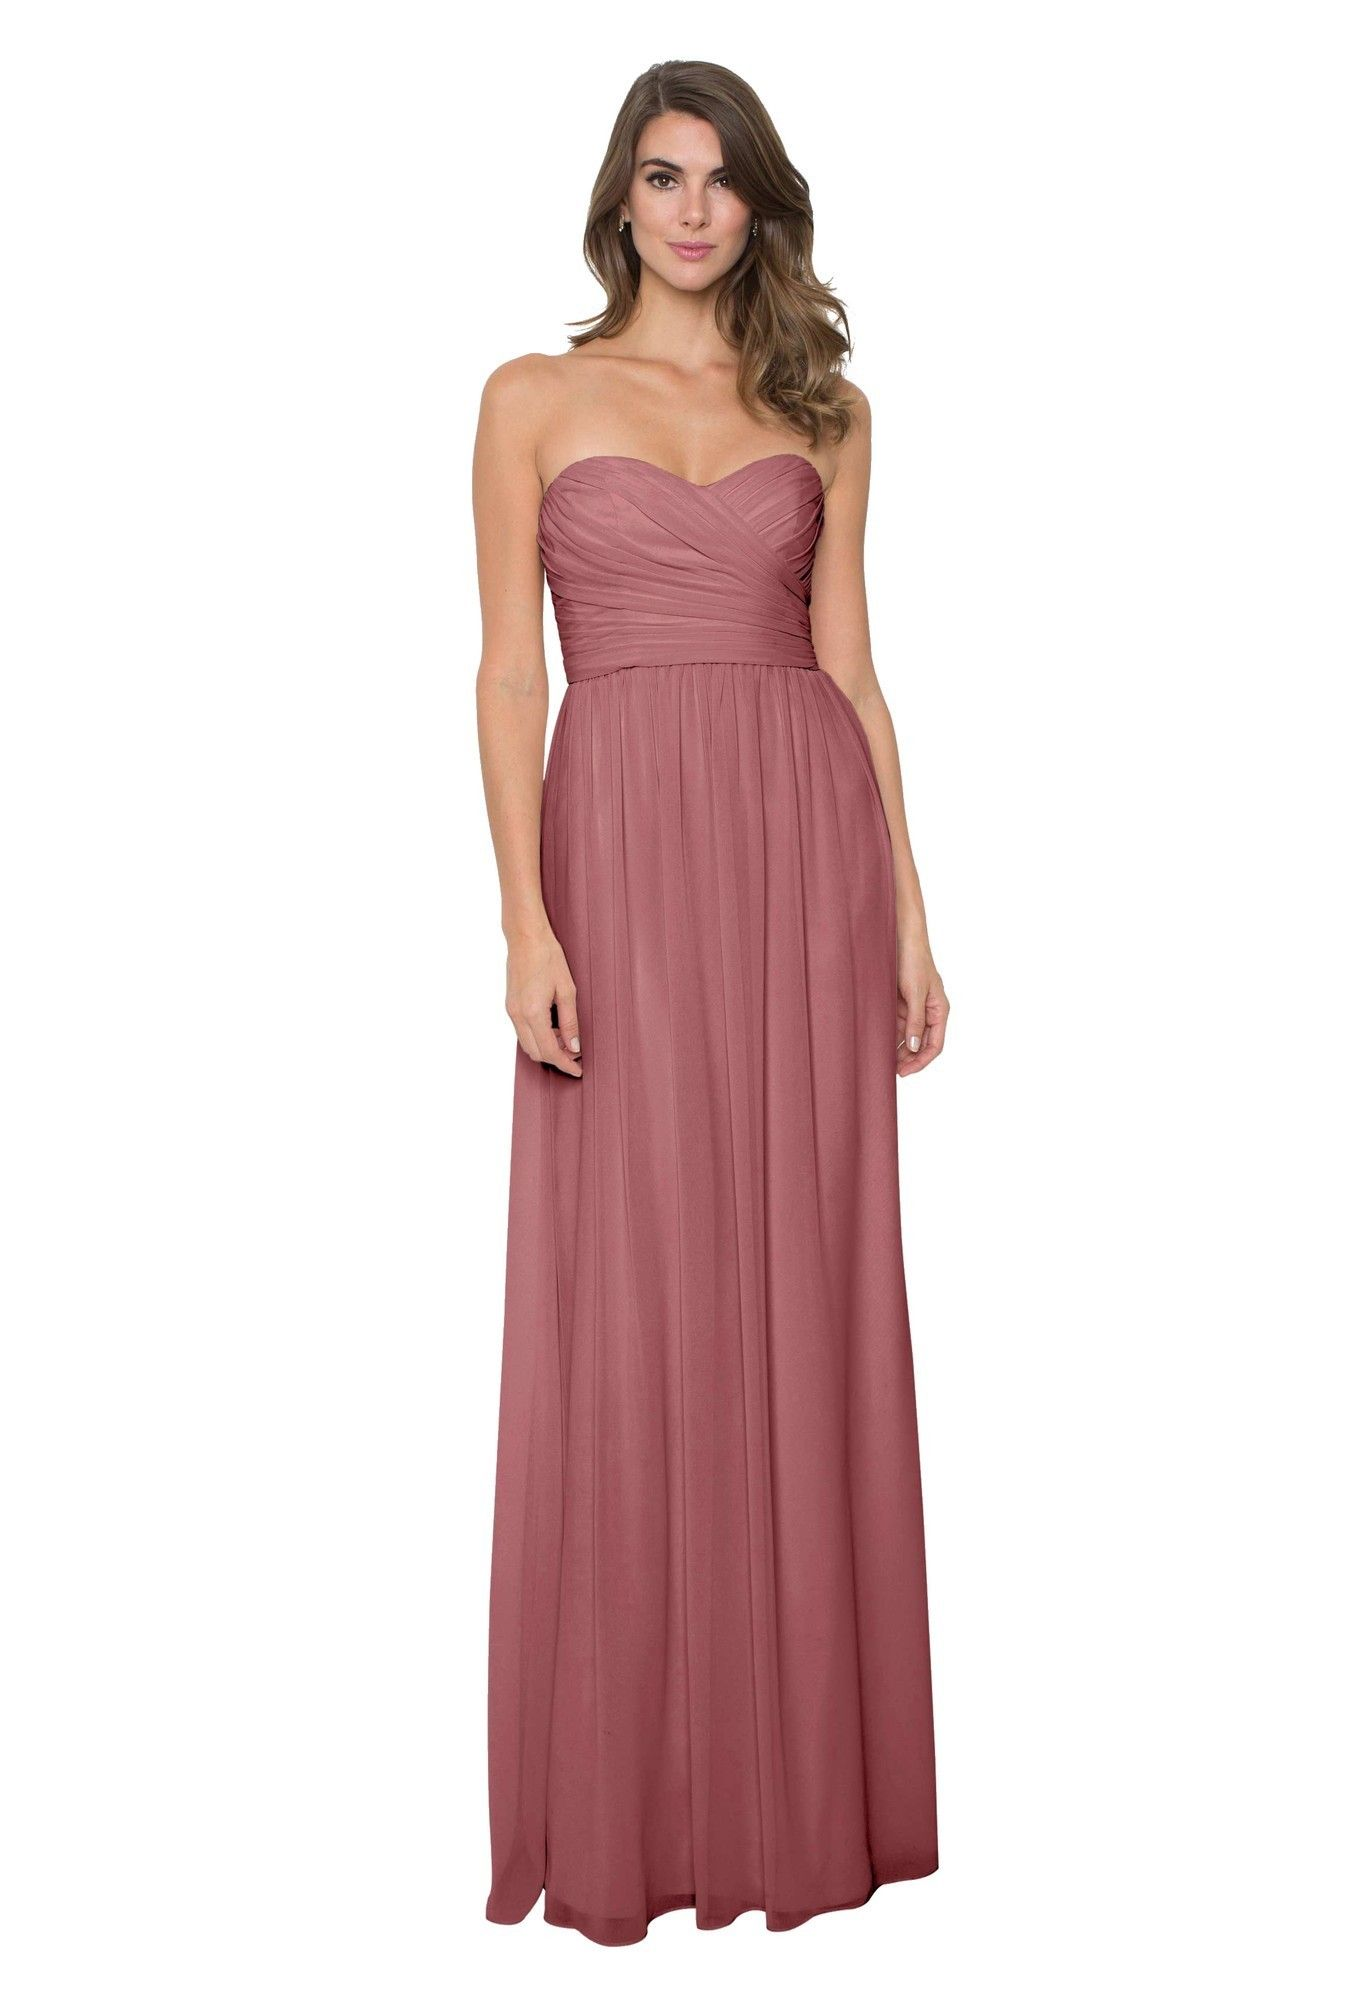 af58b16ac17 Monique Lhuillier  Madeline Dress  in Cerise. The floating chiffon skirt  enhances the elongated silhouette of this floor-sweeping bridesmaid gown.